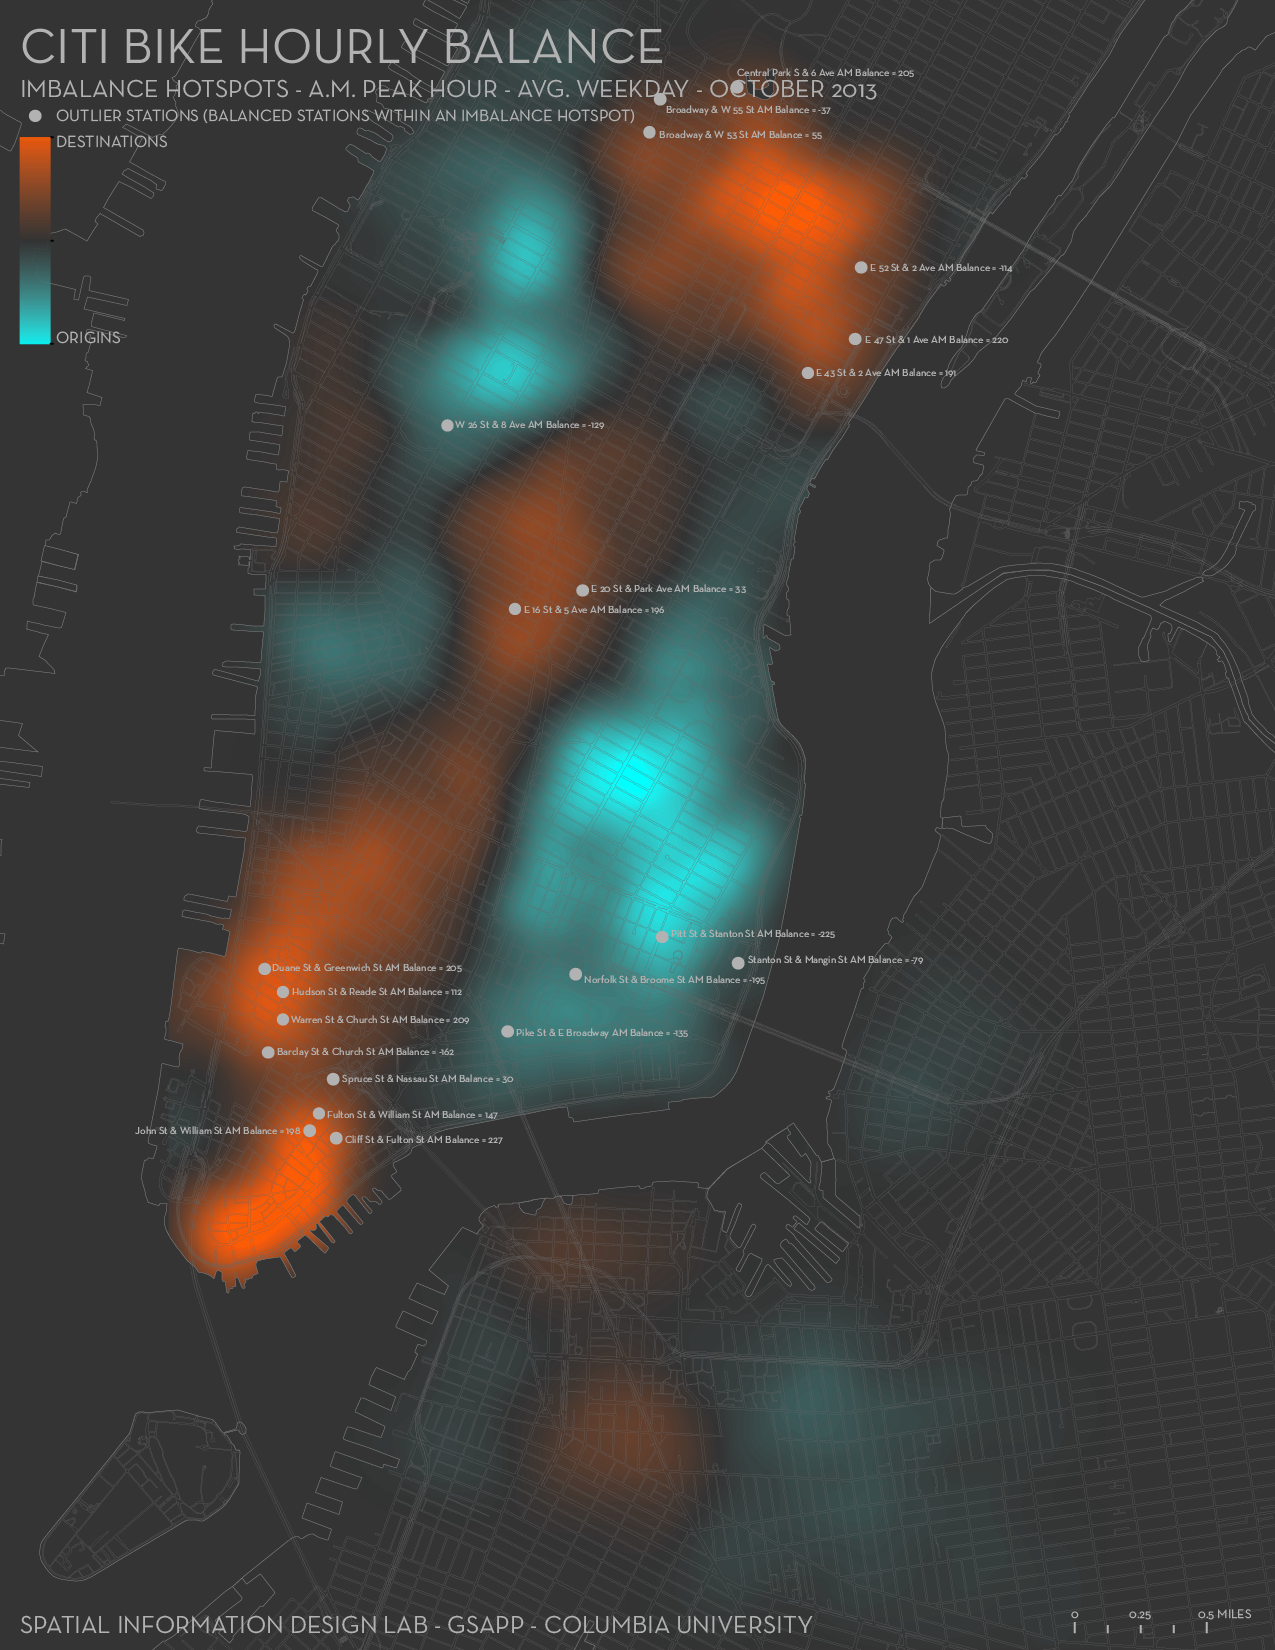 http://www.streetsblog.org/2014/06/30/the-science-and-maps-behind-finding-available-citi-bikes-and-docks/